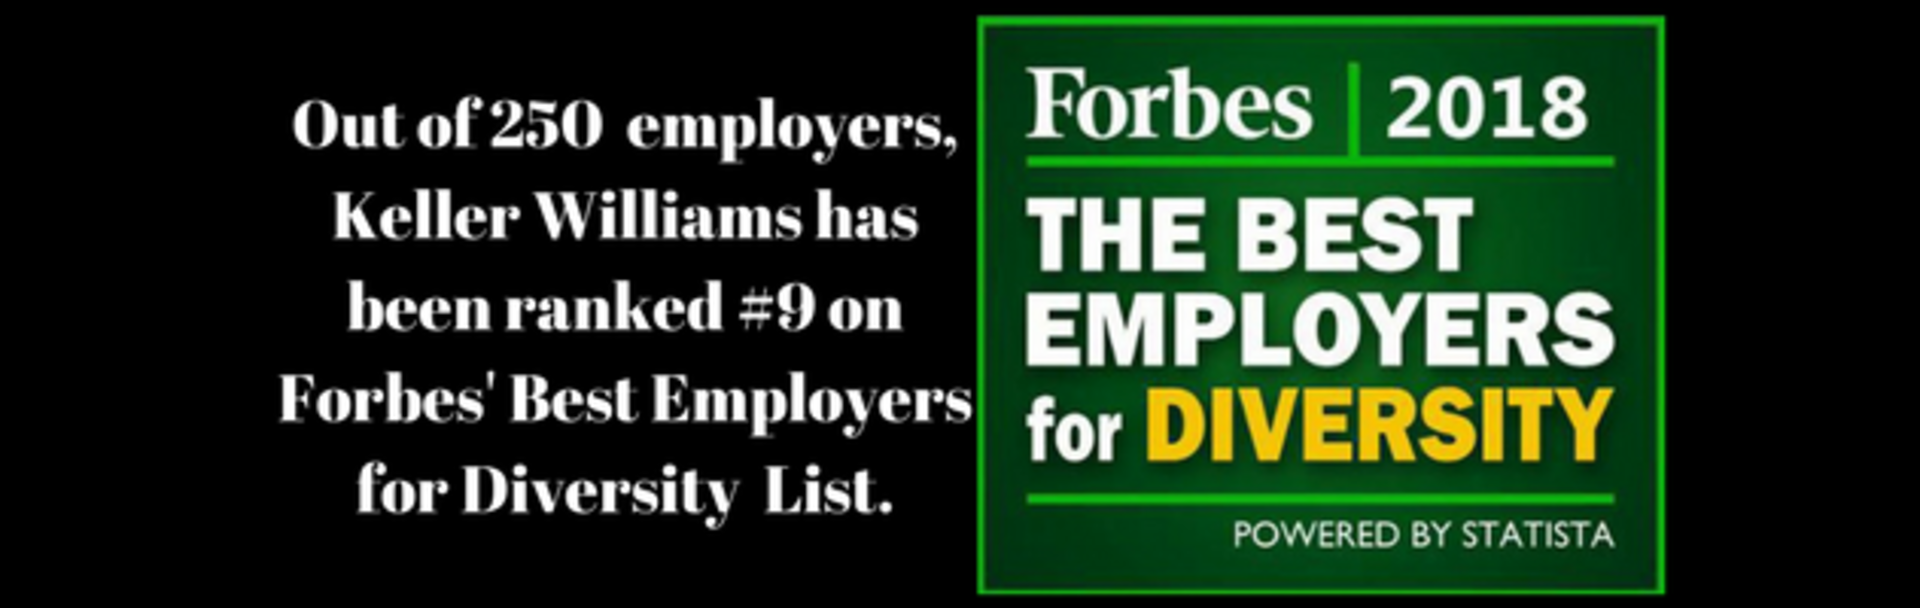 Keller Williams Ranked #9 on Forbes' Best Employers For Diversity